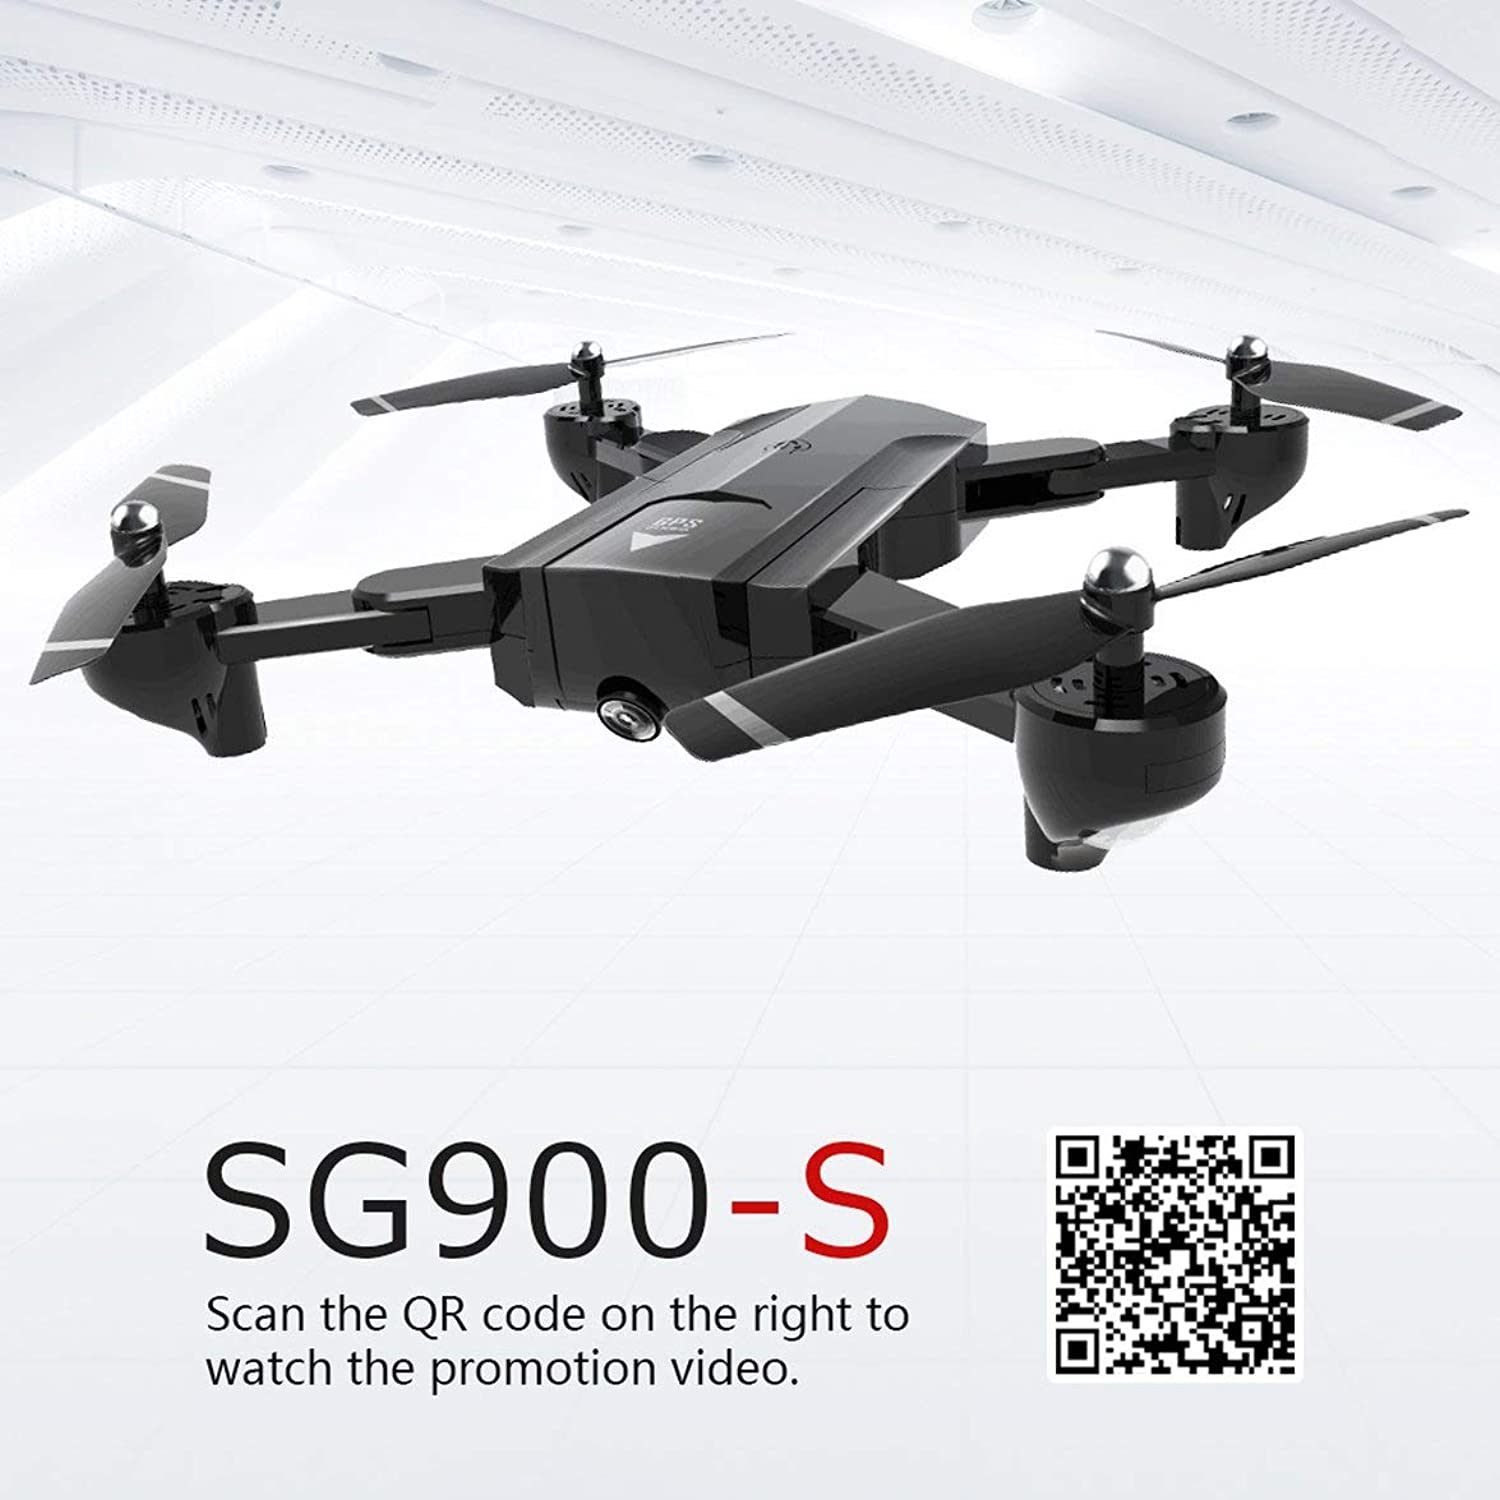 Kongqiabona SG900-S Drone GPS Drone RC Drone Foldable Drone Smart Drone FPV Quadcopter RC Quadcopter Selfie Drone